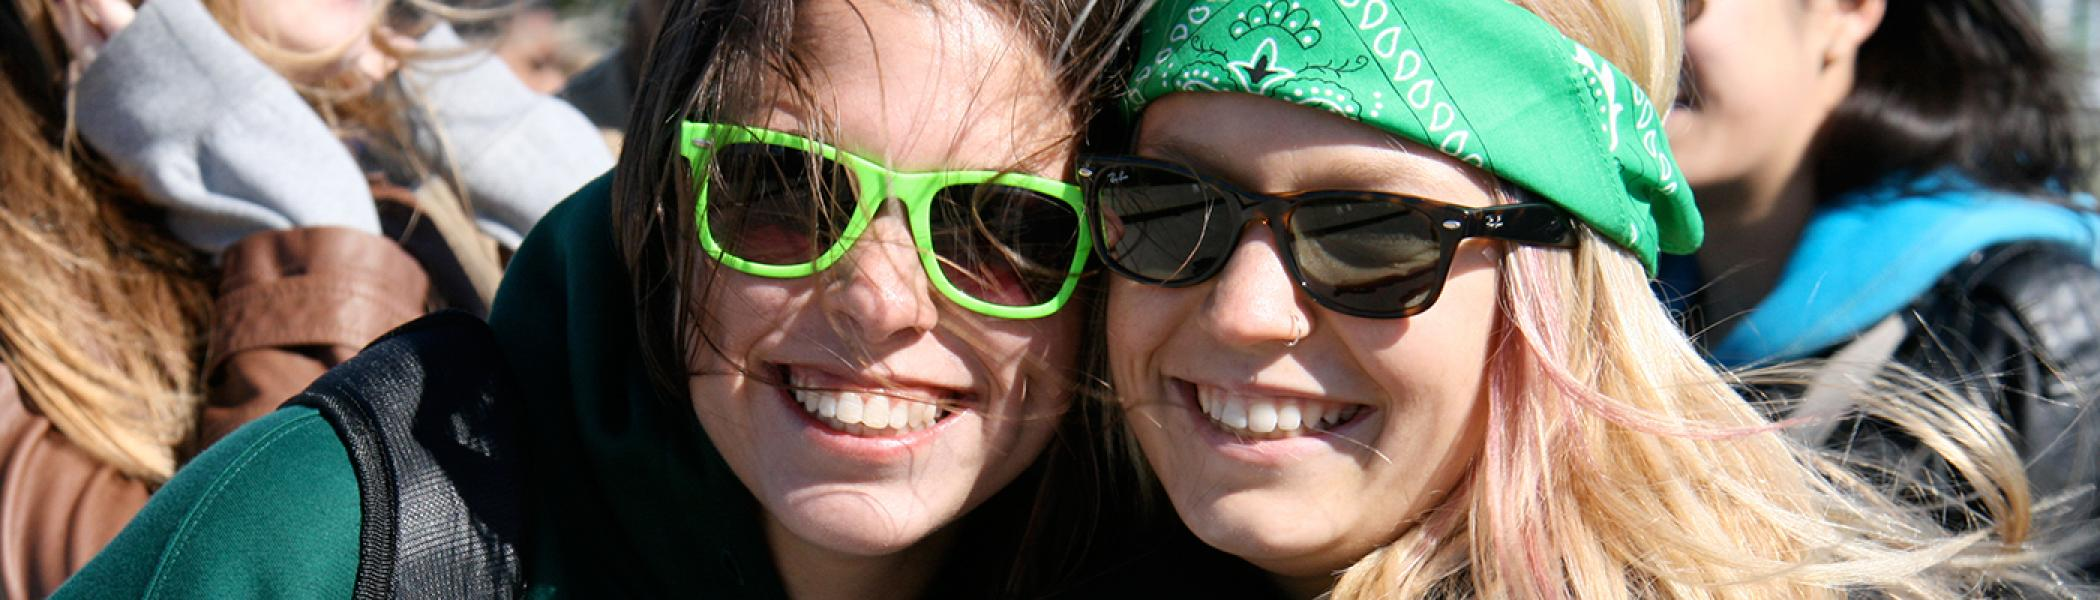 Two students in sunglasses and bandanas smiling at during an outdoor activity in a crowd of people